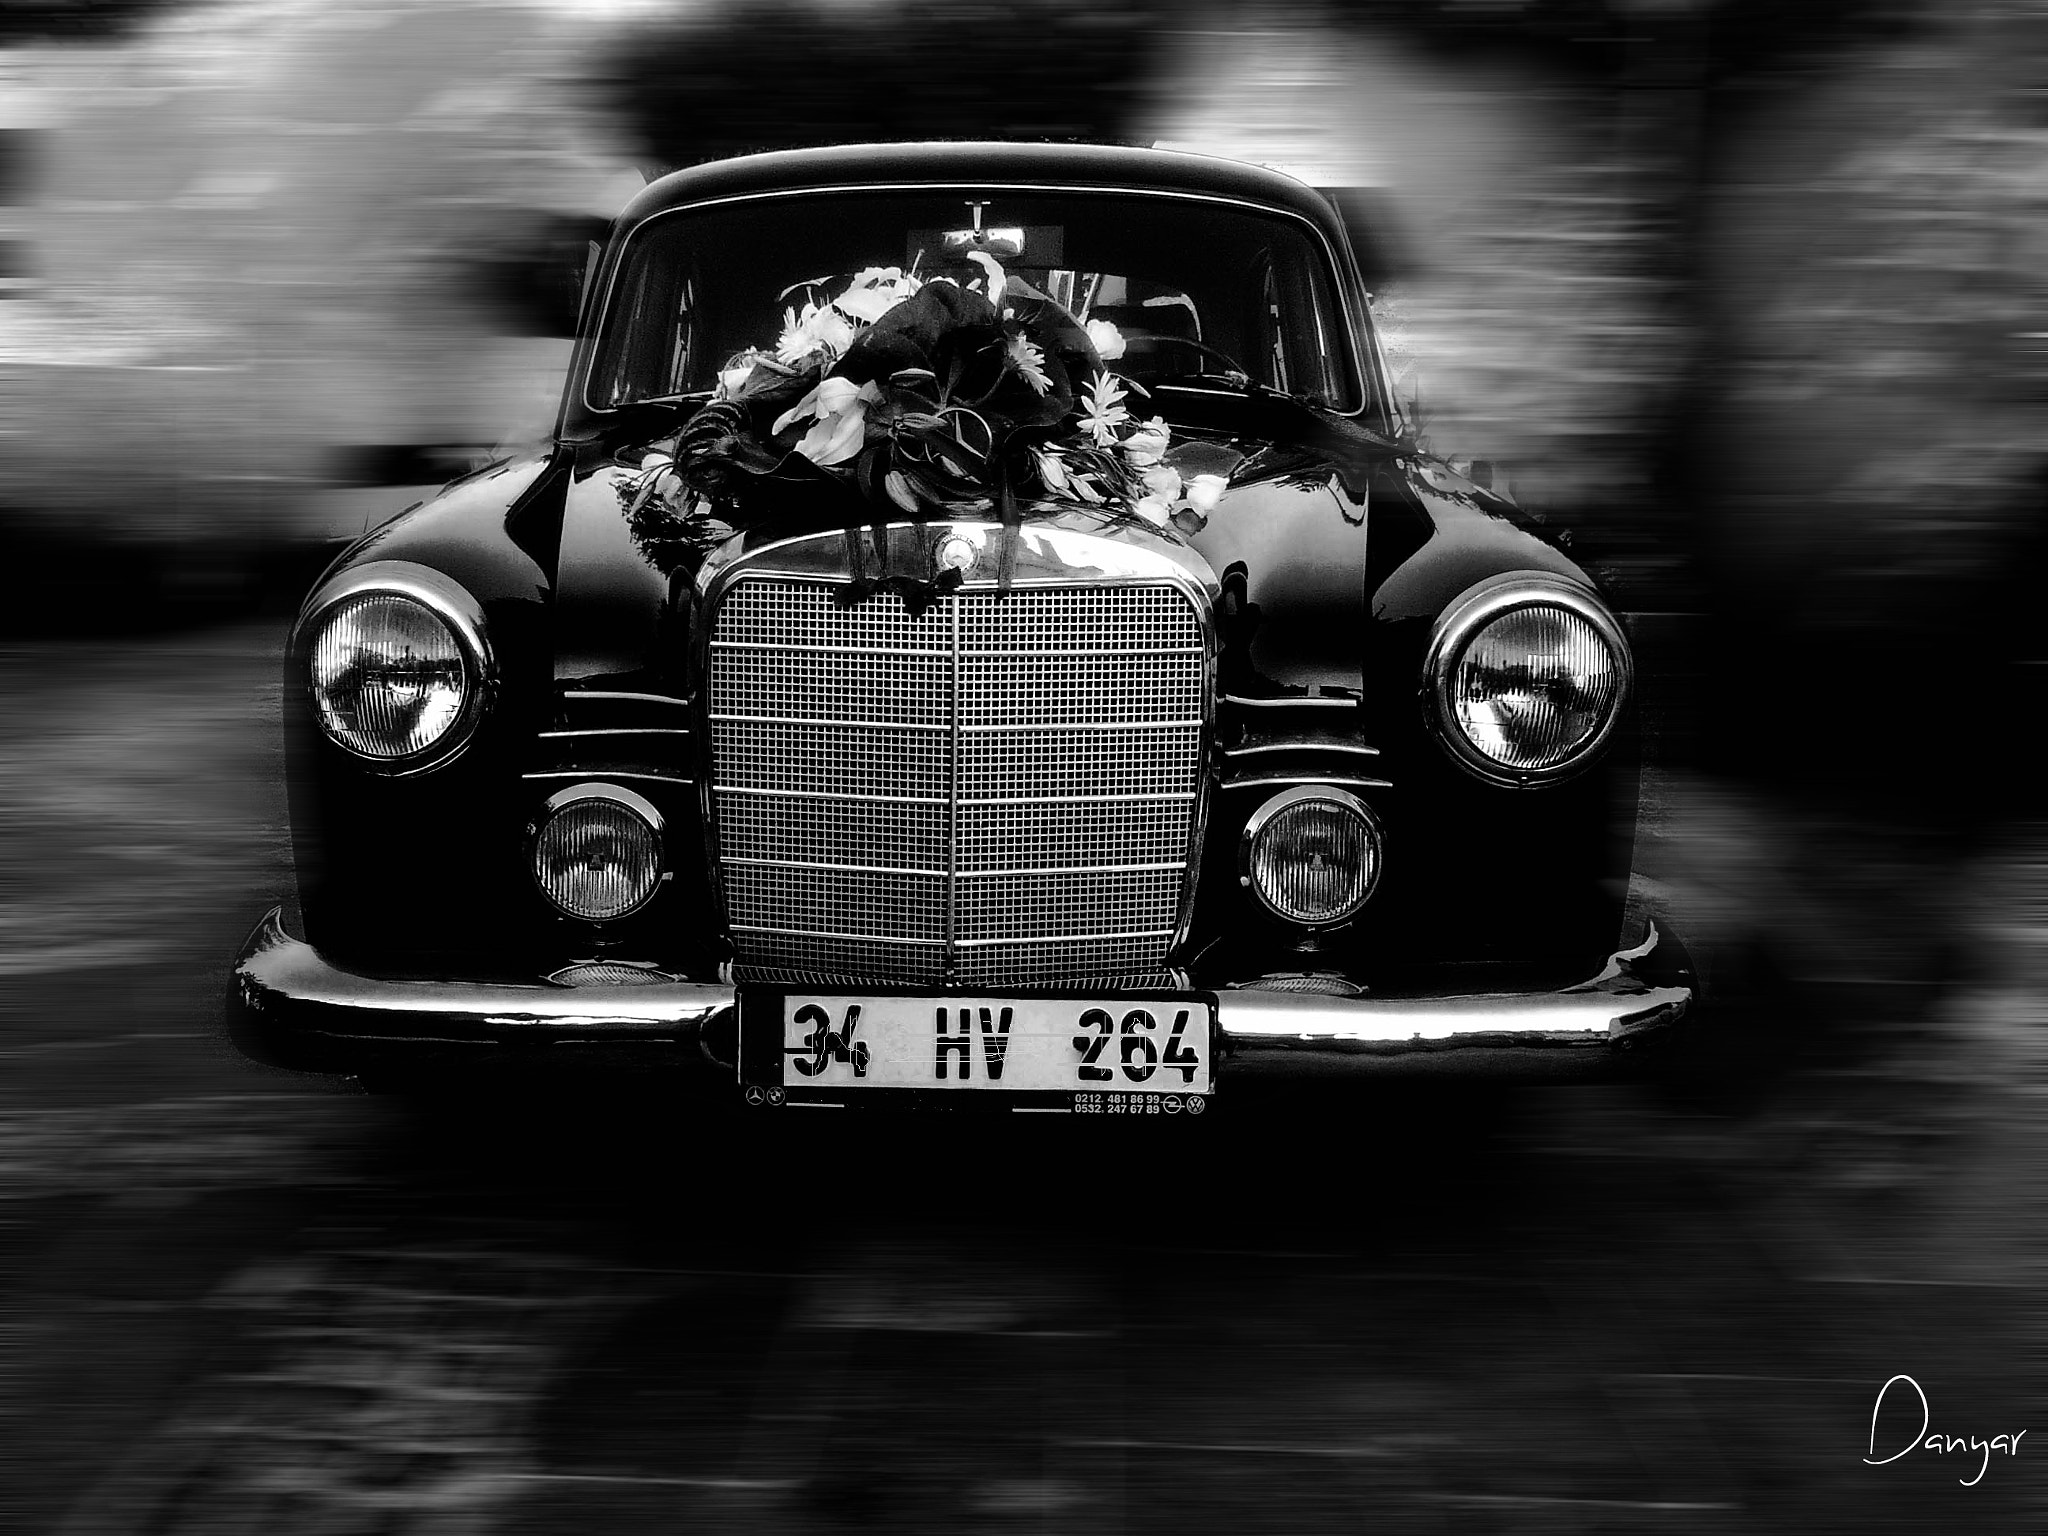 Photograph An old wedding car by Red Danyar on 500px